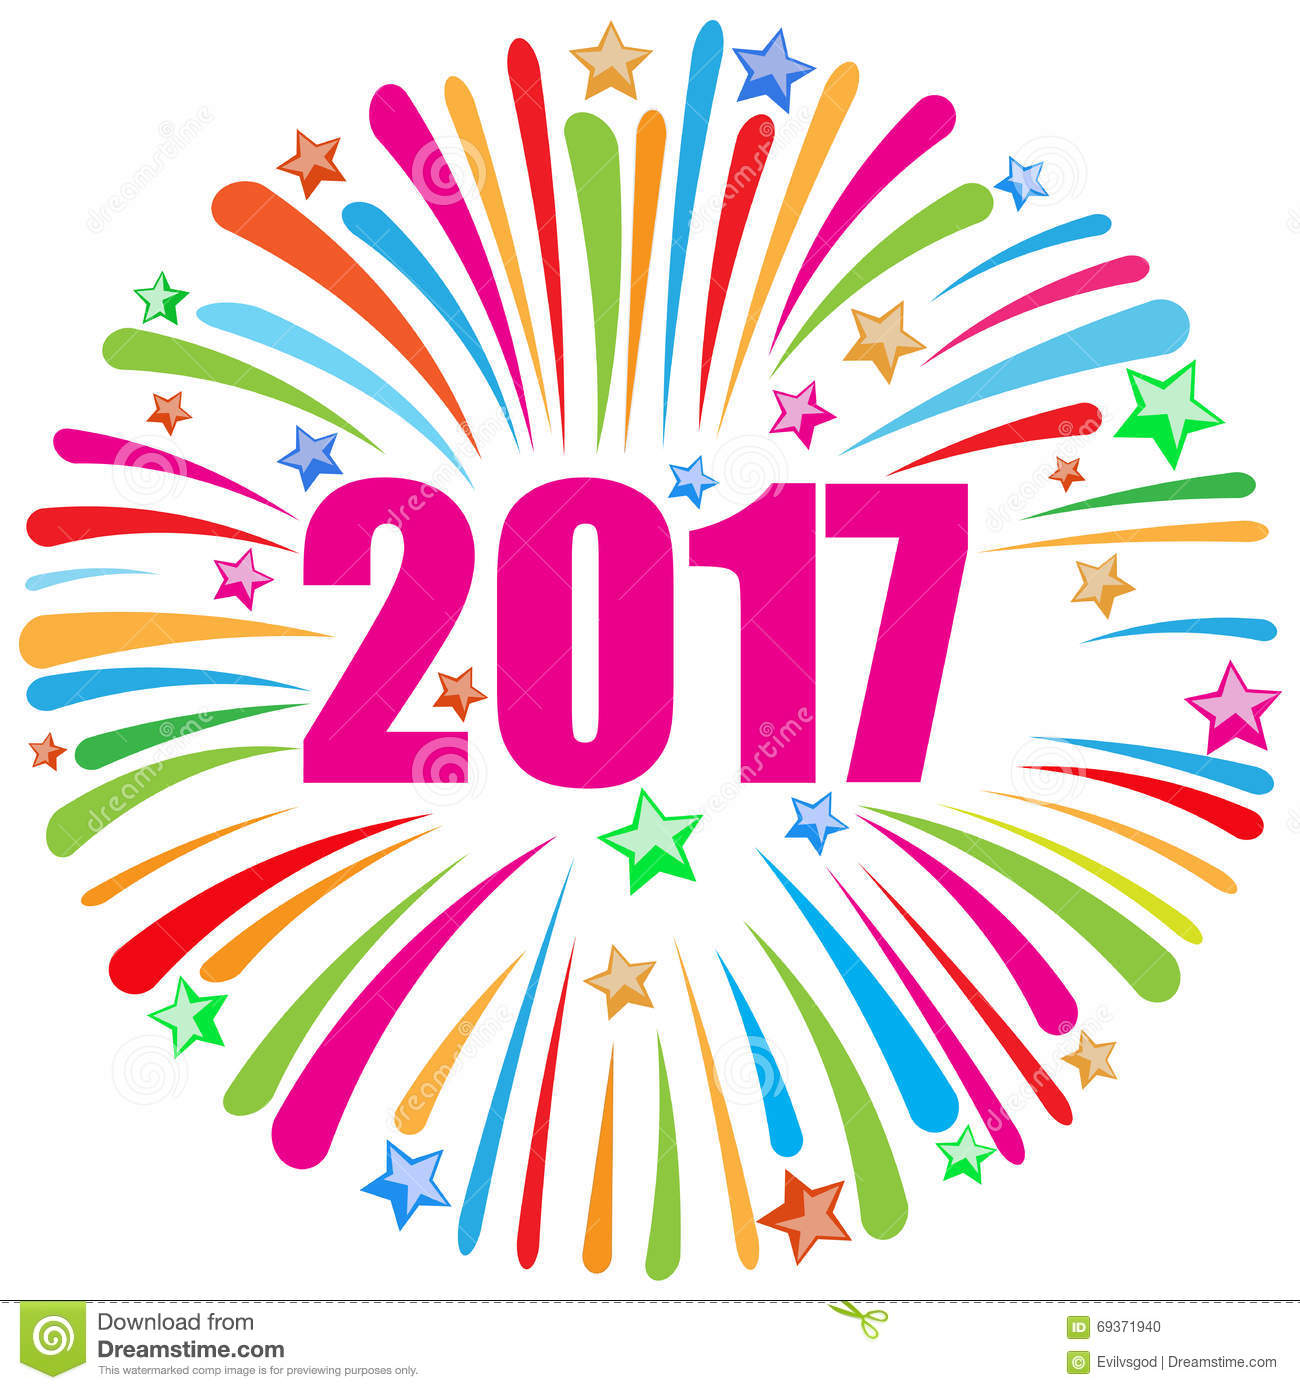 New Years Eve Clipart 2017.